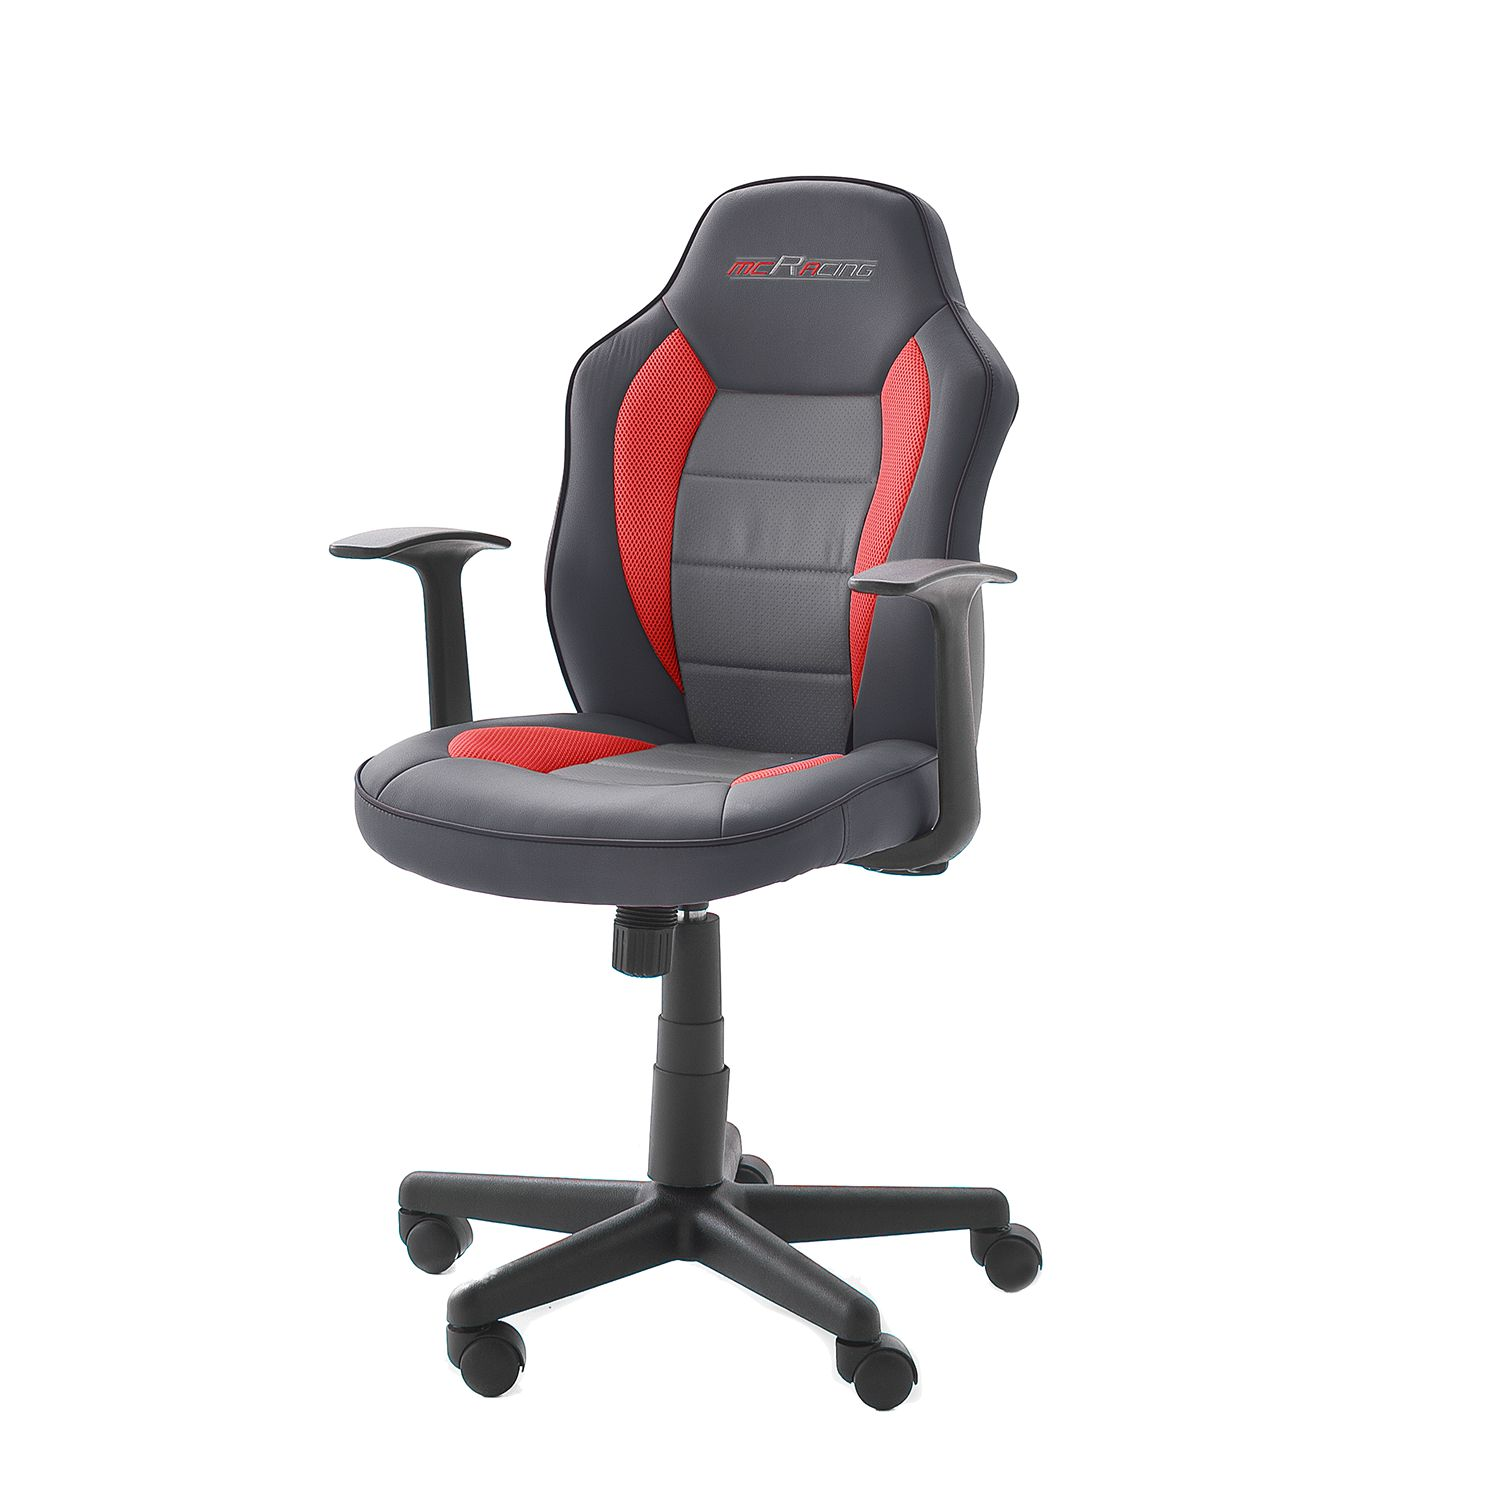 Gamestoel mcRacer III - kunstleer/nylon - zwart/rood, home24 office